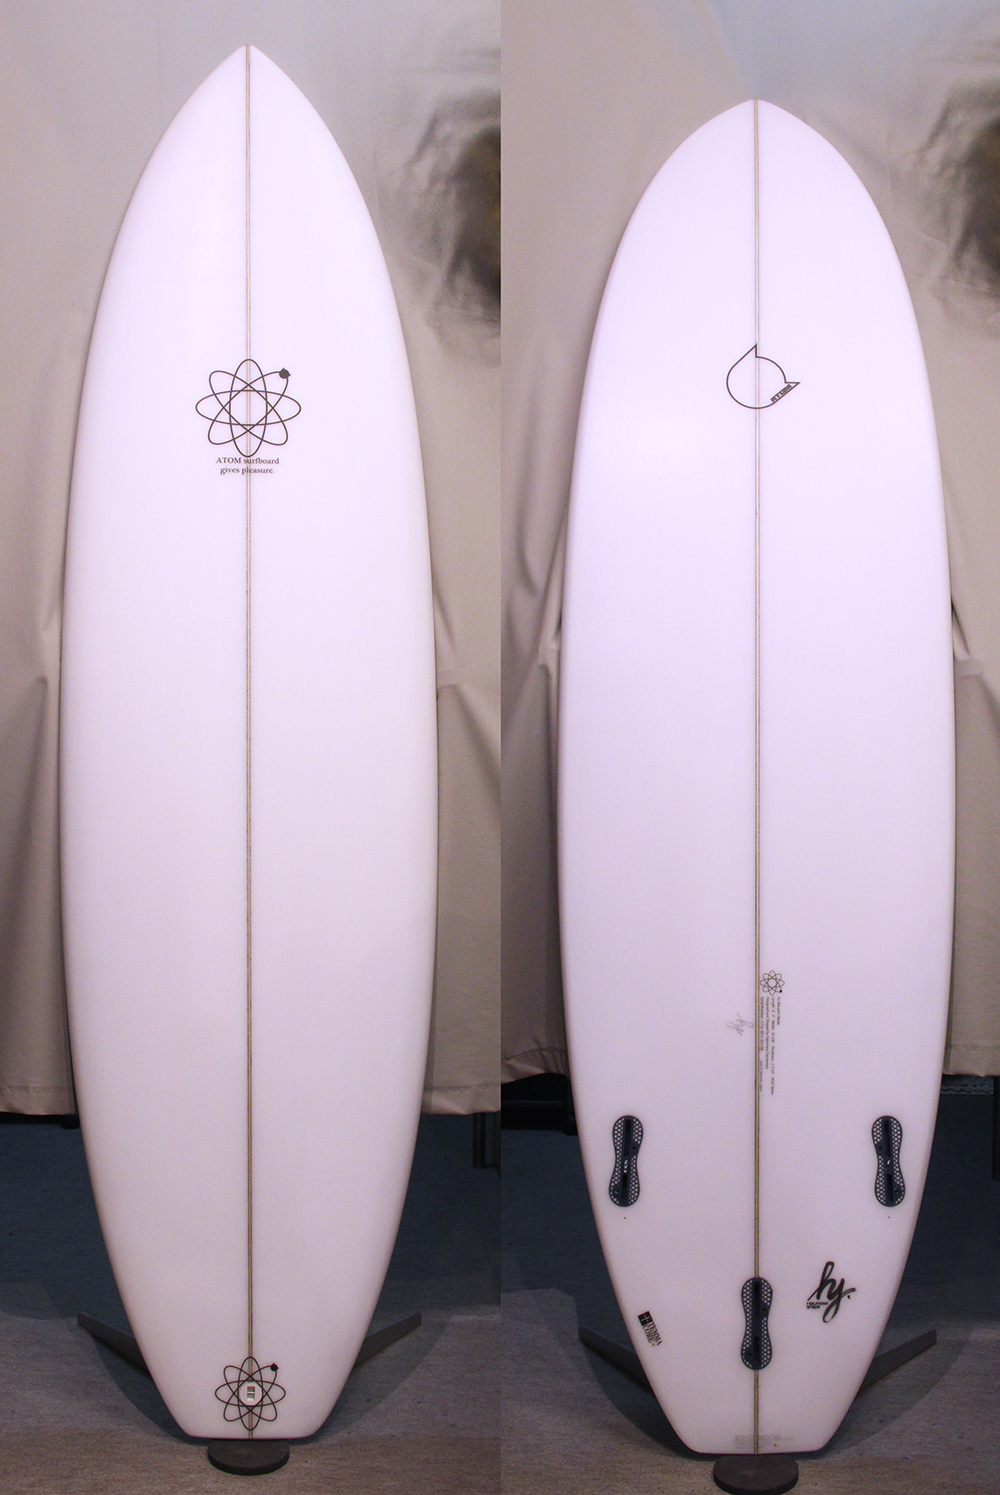 ATOM Surfboard Y.F.D. mod. model